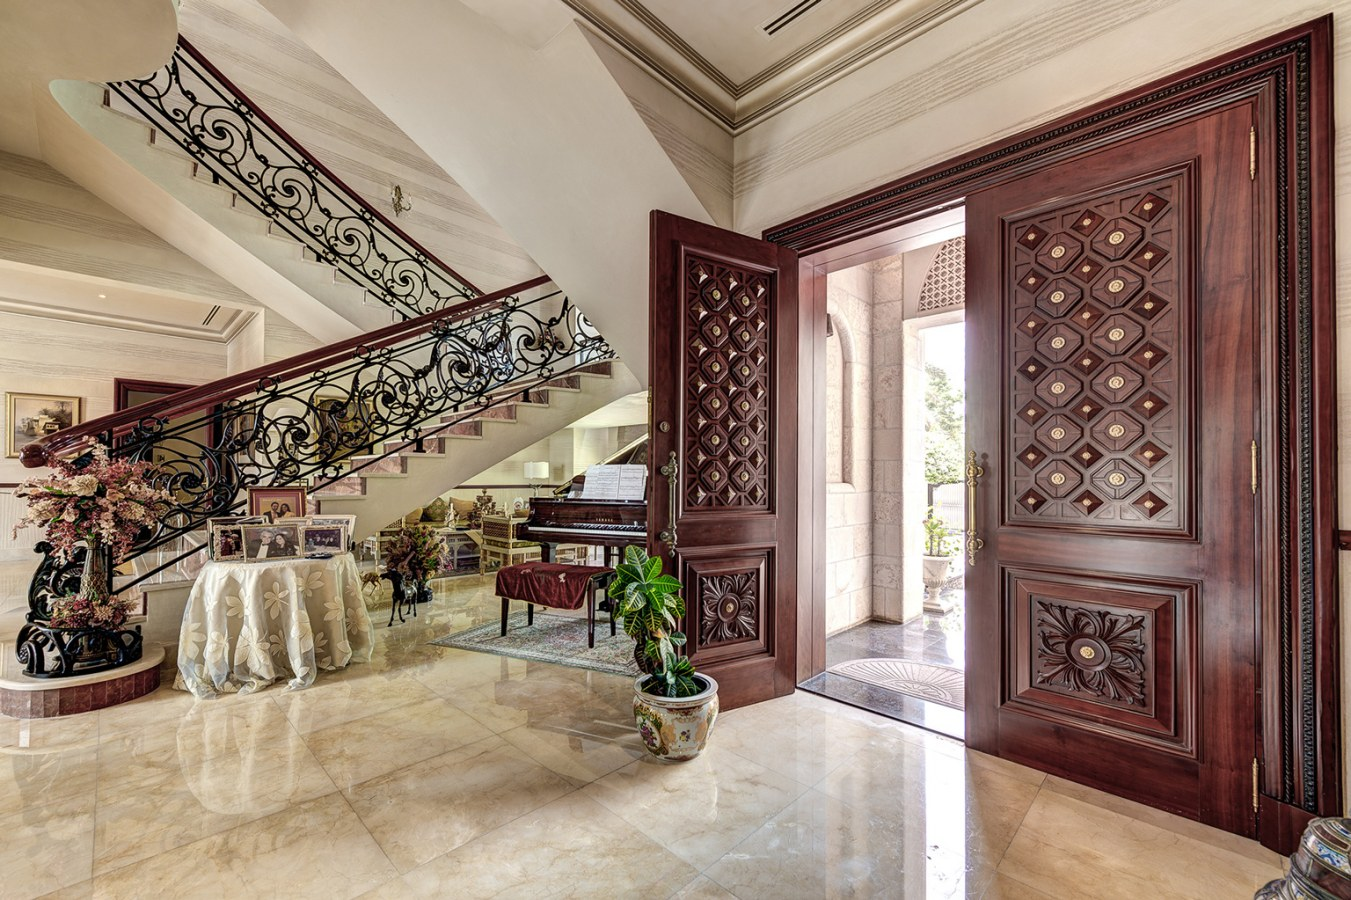 Luxurious villa for sale in Emirates Hills listed with The Noble House Real Estate on Bayut 02